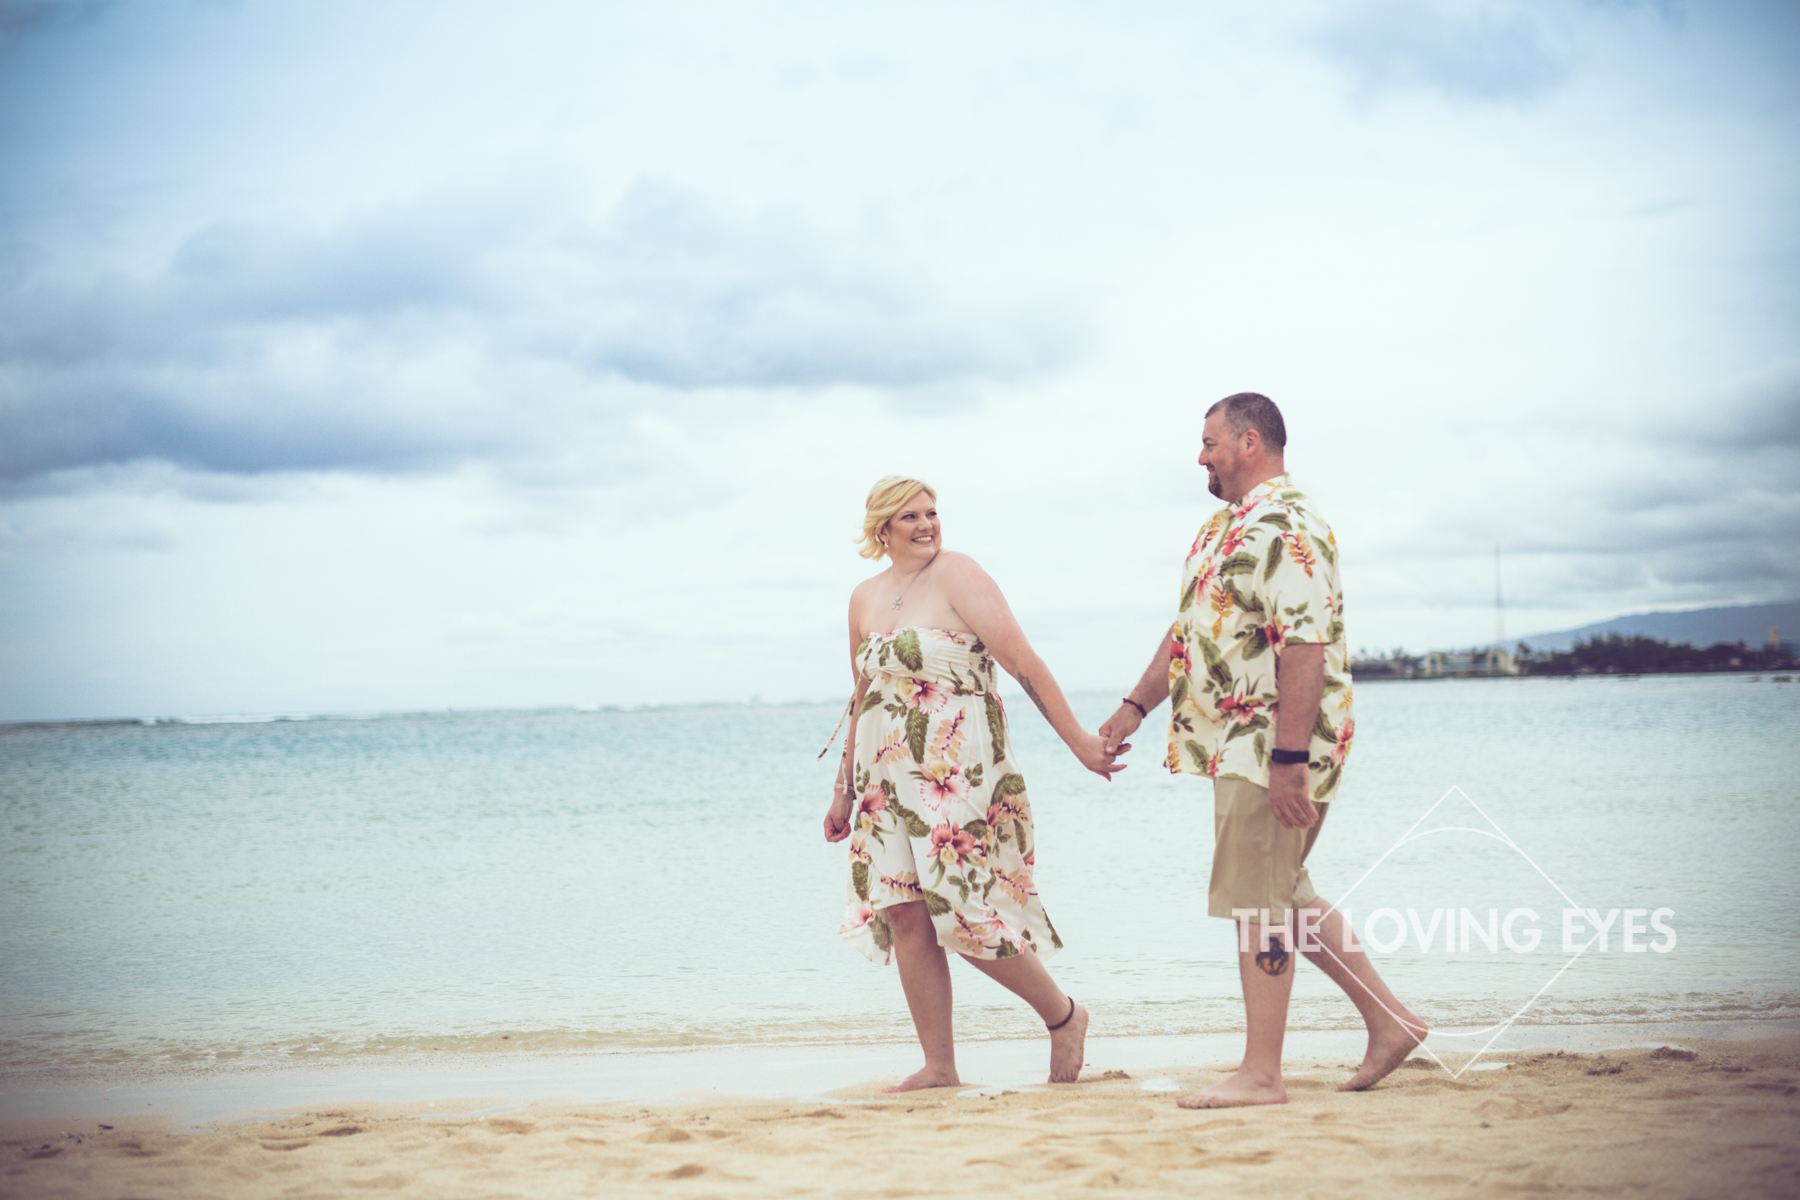 Walking hand in hand on the beach during Hawaii vacation at Ala Moana Beach Park